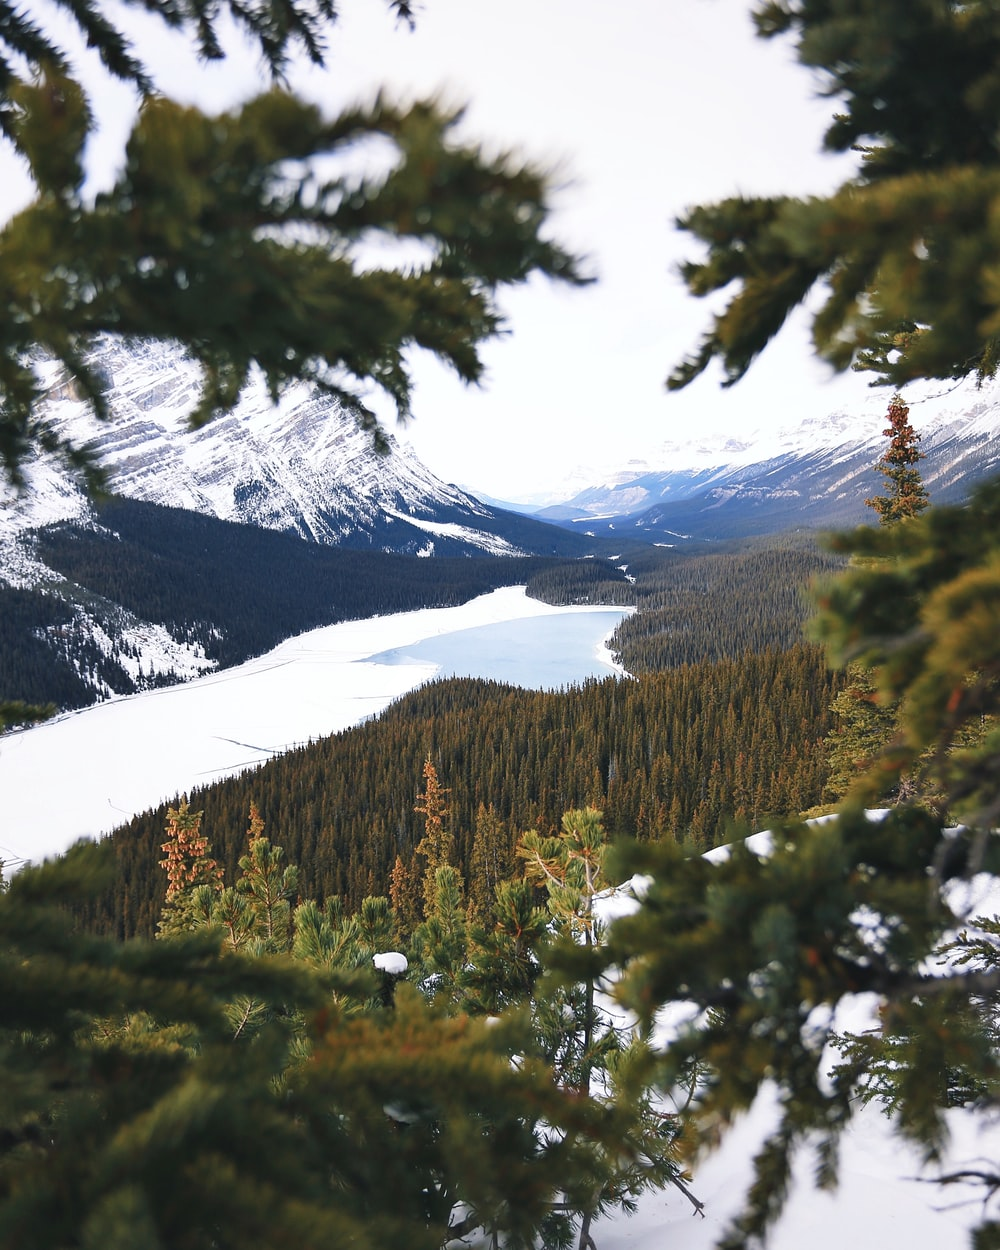 lake between mountains with pine trees